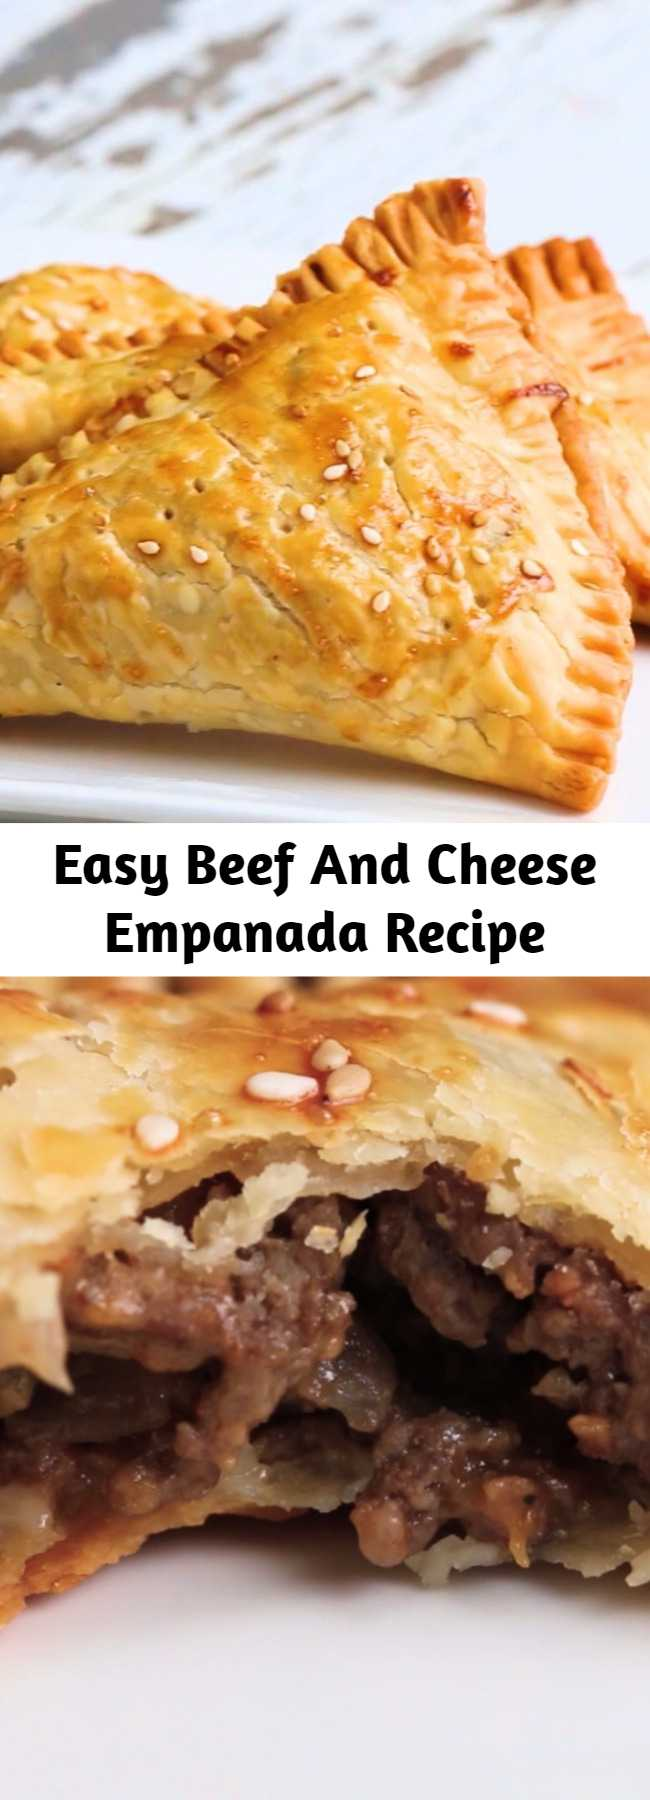 Easy Beef And Cheese Empanada Recipe - Cheeseburger Hand Pies. These were very good and super easy to make!